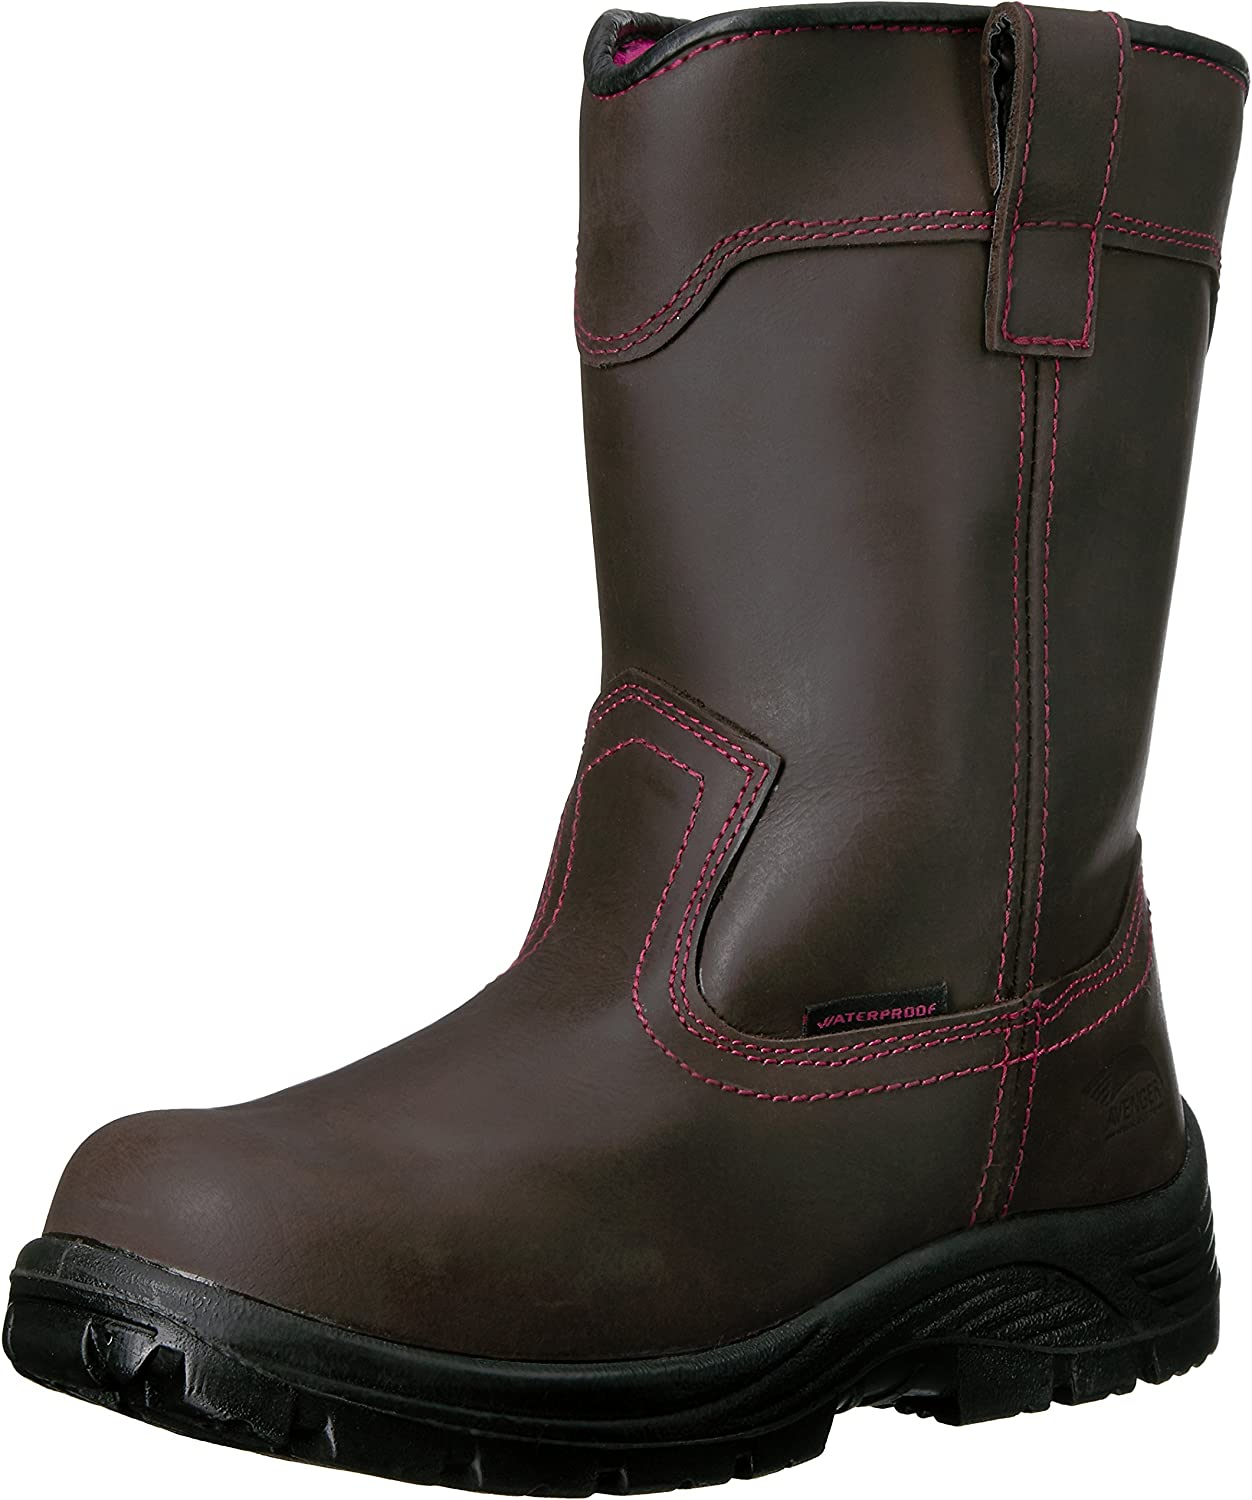 Avenger Safety Footwear Womens Avenger 7146 Womens Comp Toe Wp Pull on Eh Work Boot Industrial & Construction shoes